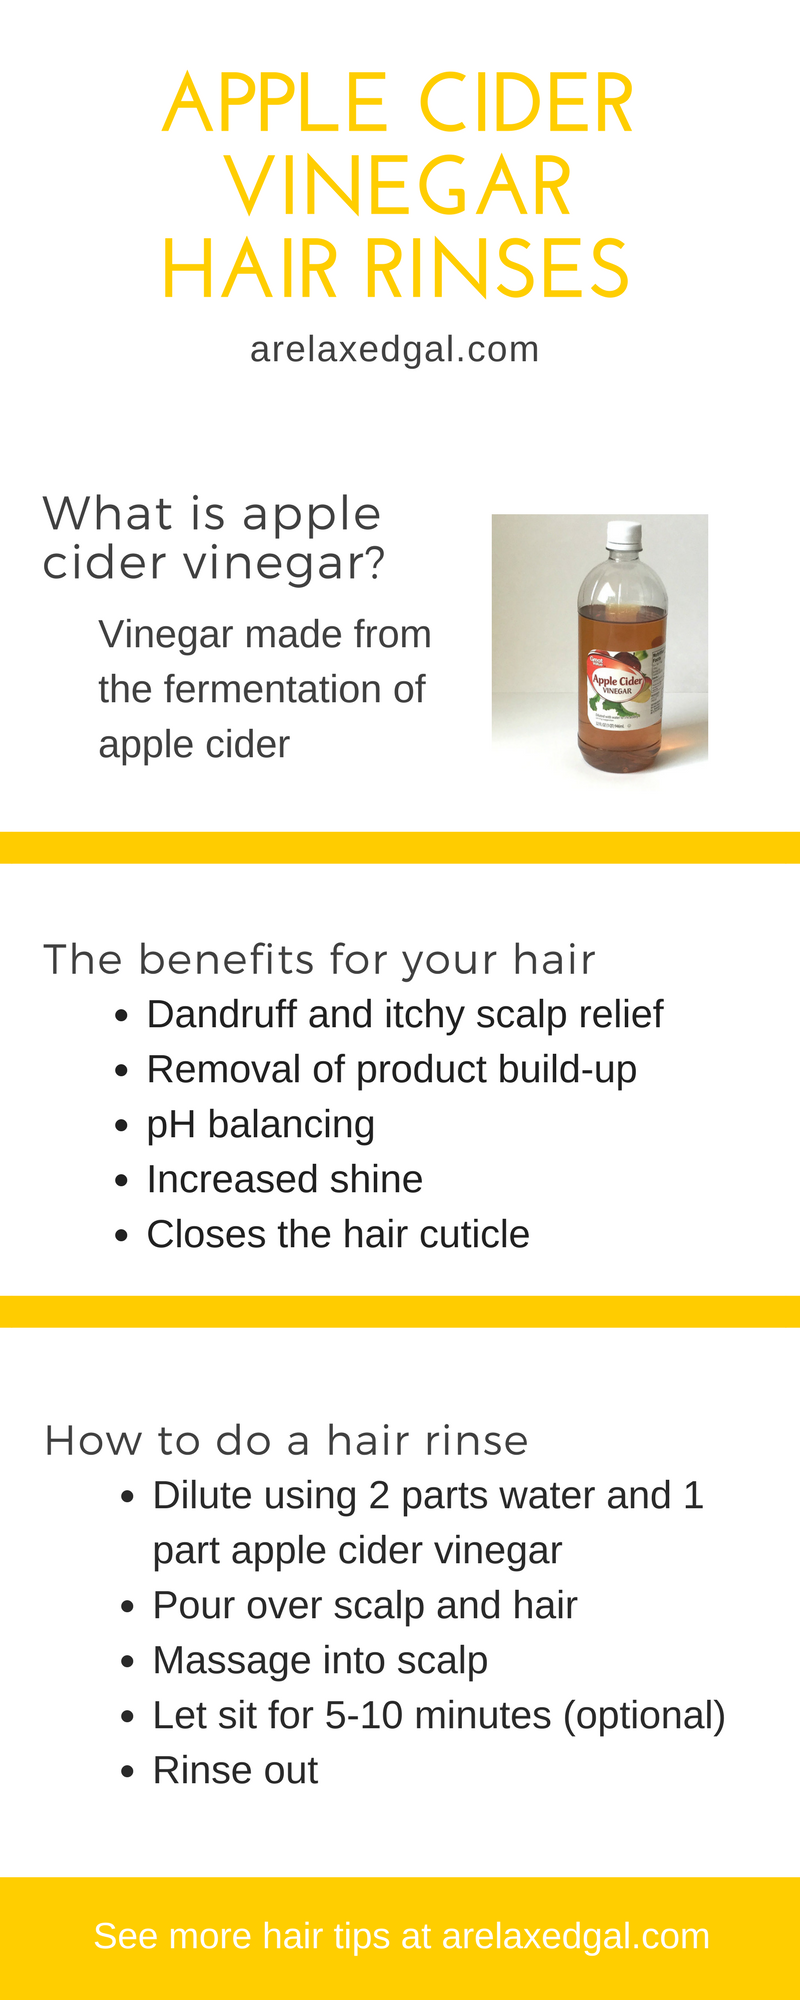 Why I Rinse My Hair With Apple Cider Vinegar Apple Cider Vinegar Is A Natural Hair Remedy Natural Hair Remedies Hair Dandruff Apple Cider Vinegar Hair Rinse